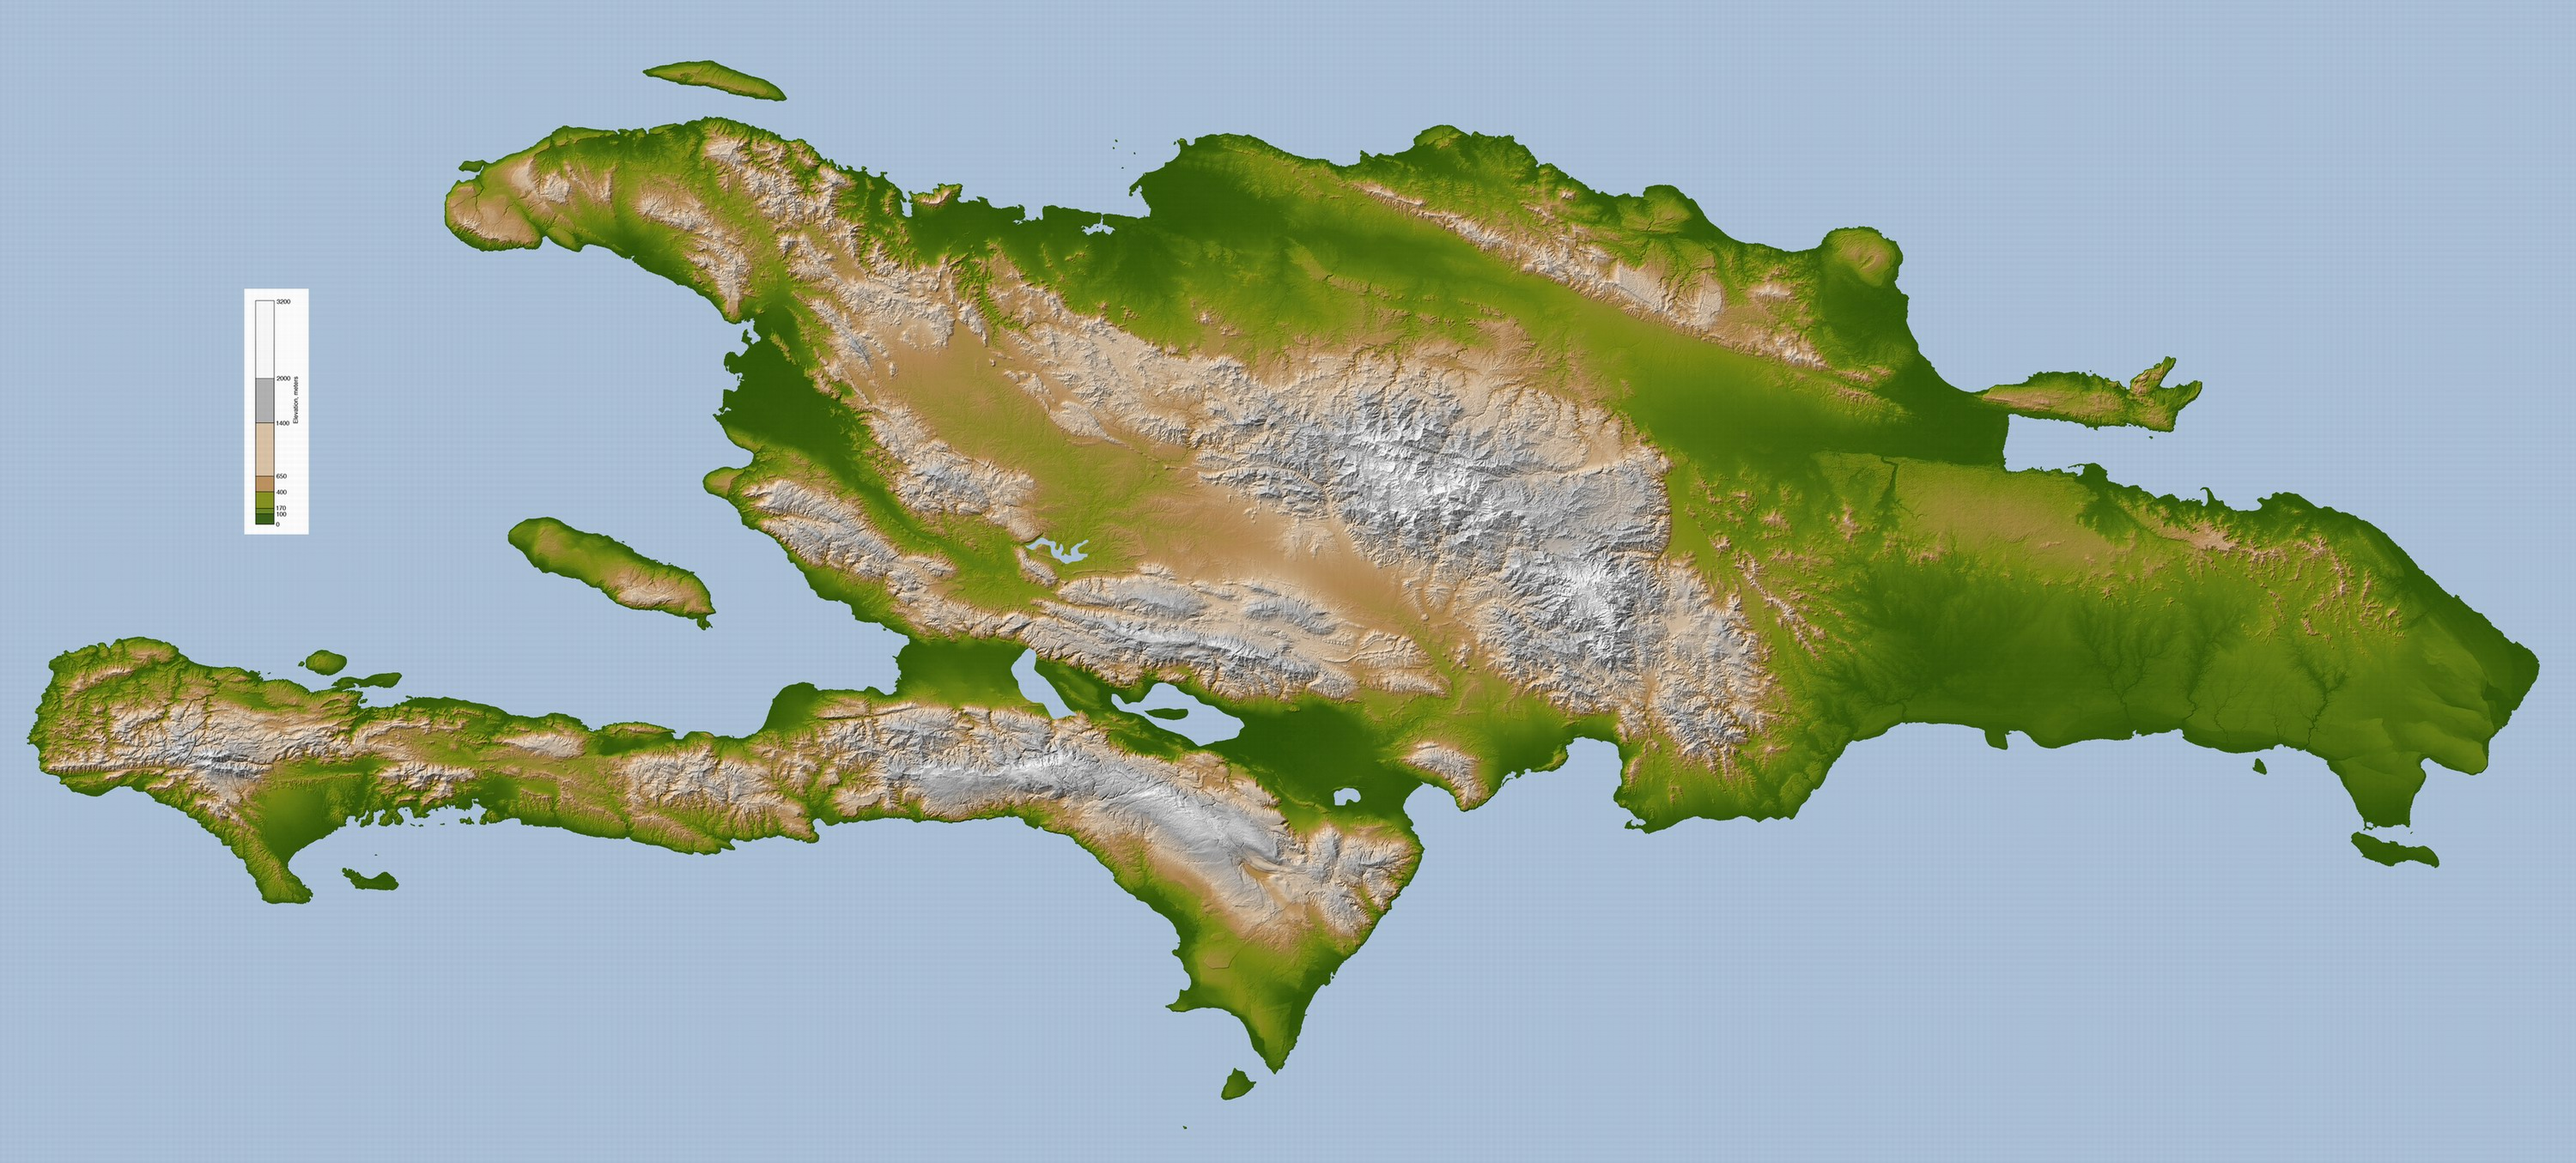 File:Hispaniola lrg.jpg - Wikipedia, the free encyclopedia